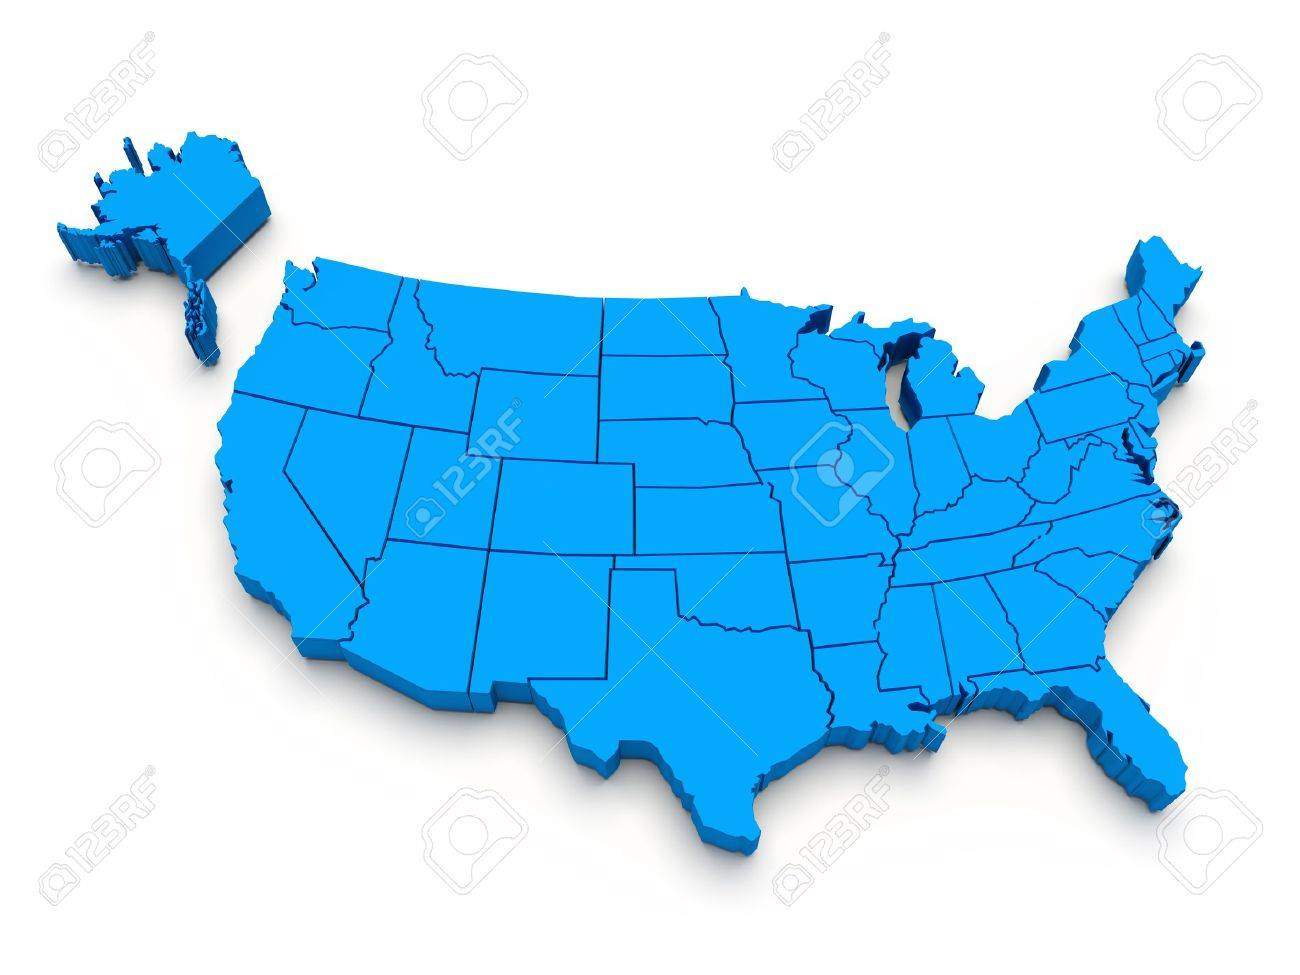 Reference Map Of Arkansas USA Nations Online Project FileArkansas - 3d map usa states